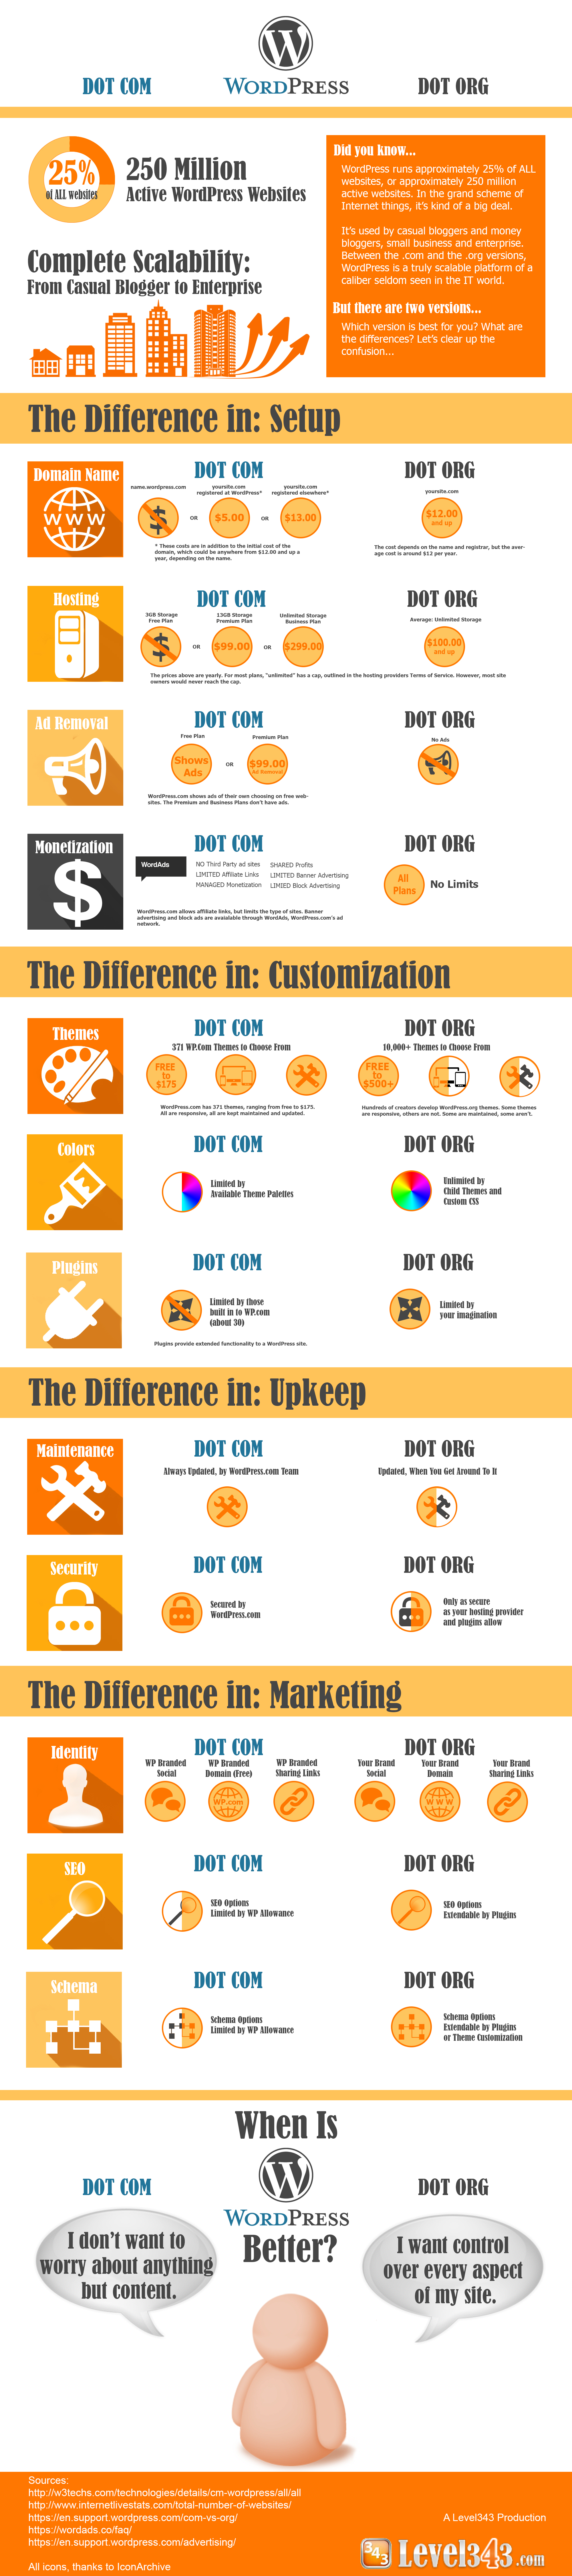 What's the difference between wordpress dot com and wordpress dot org - Infographic by Level343